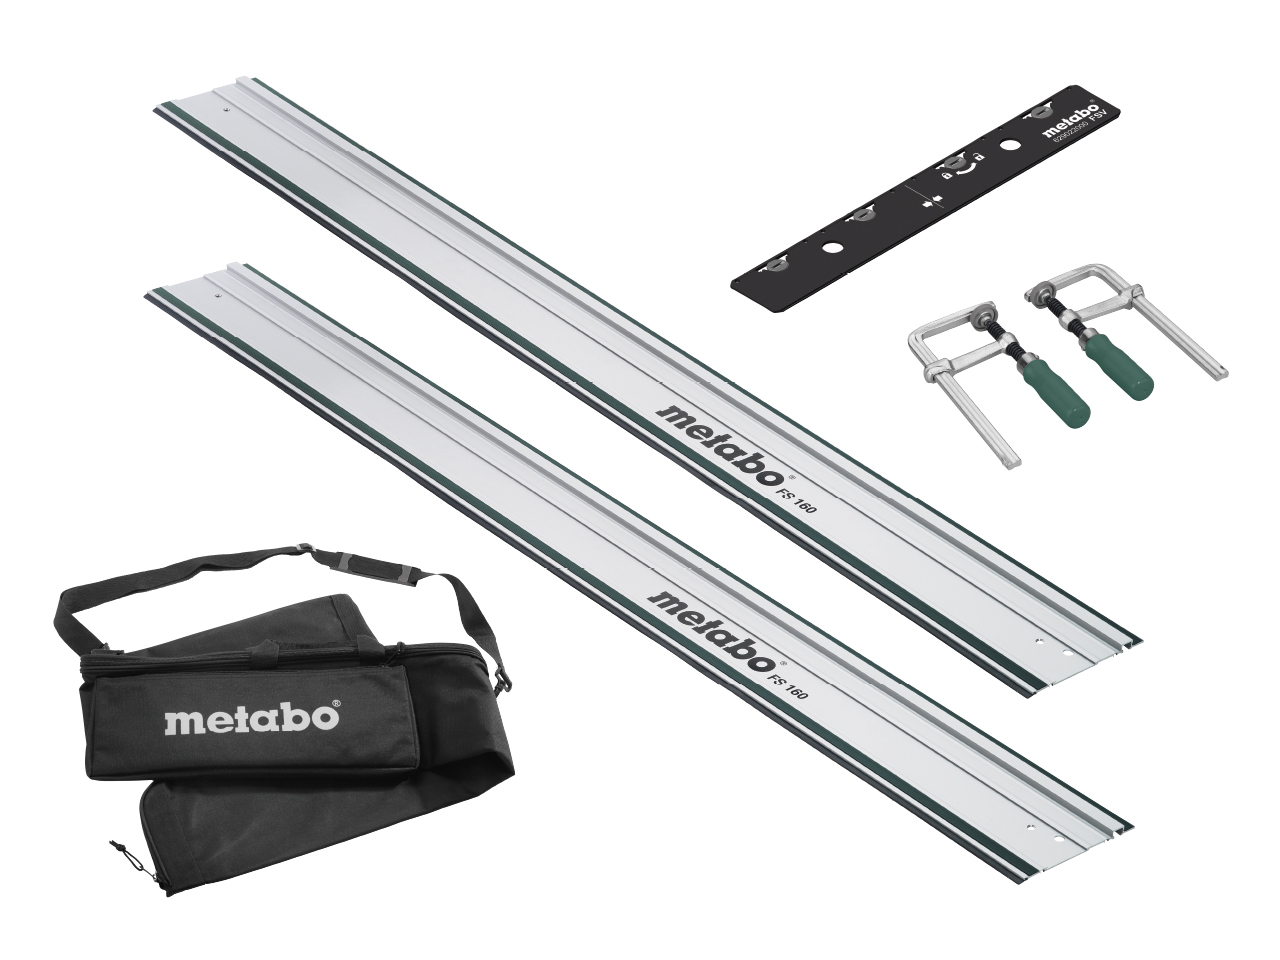 Metabo Plunge Saw Guide Rail Kit (2 x Guide Rail, Joining Bar, Bag & Clamp)